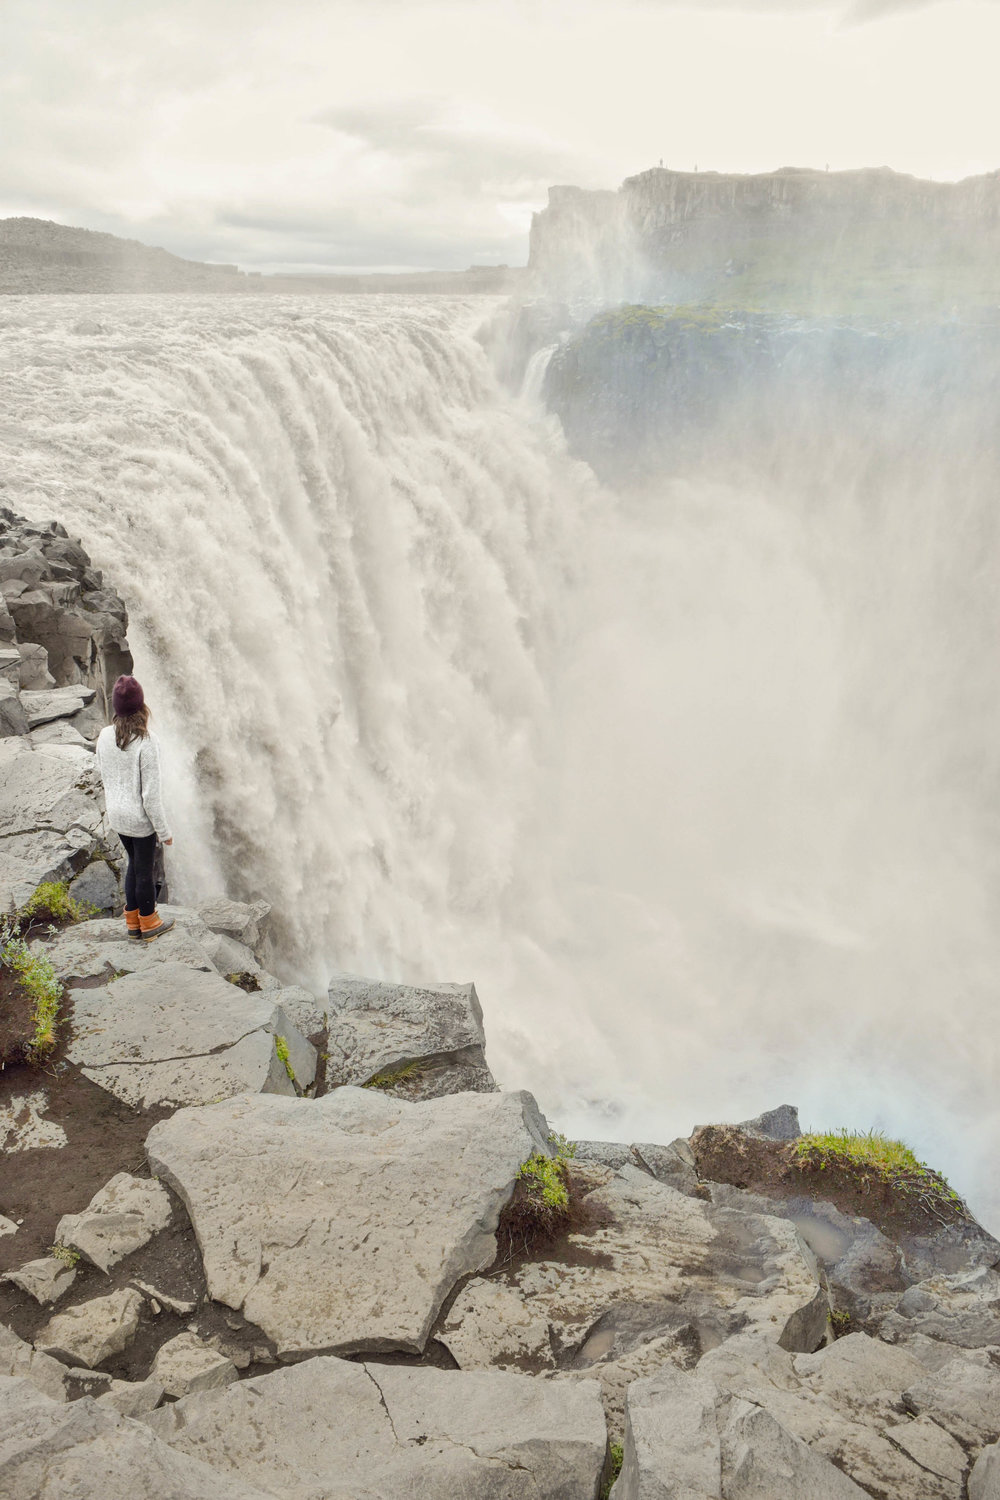 One of the best waterfalls in Iceland is Dettifoss